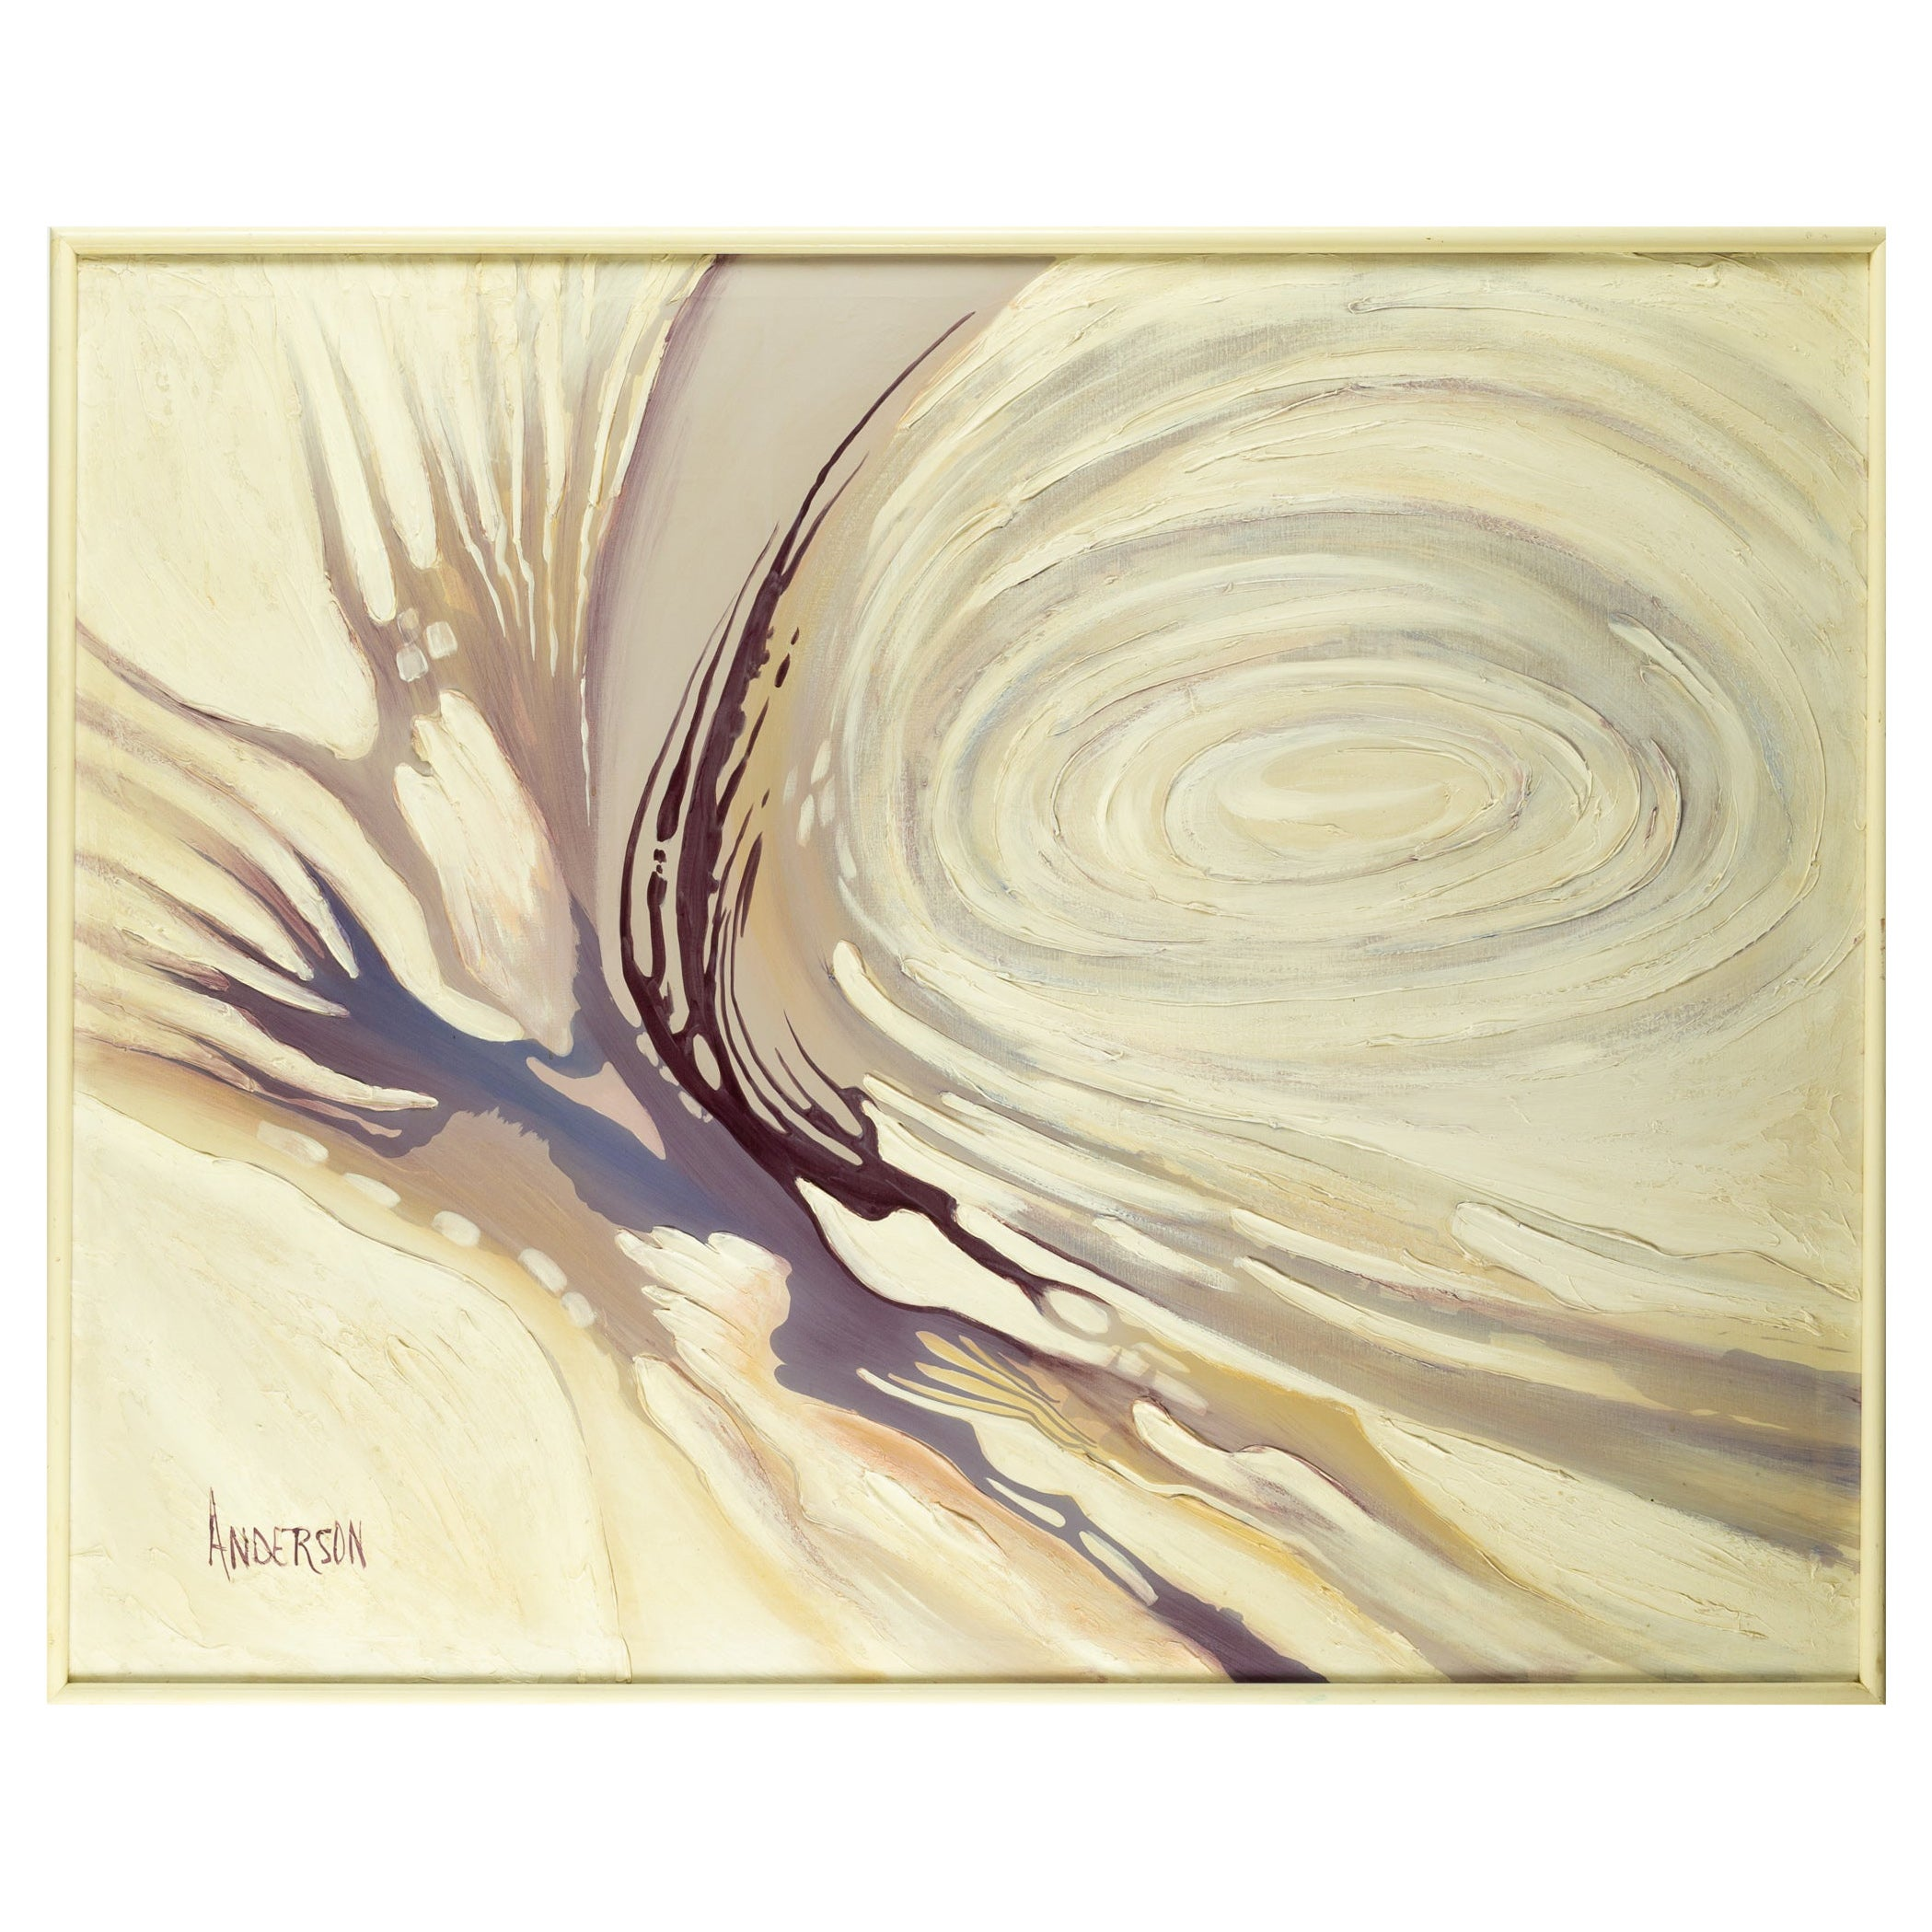 Mid Century Abstract Oil on Canvas Painting by Anderson